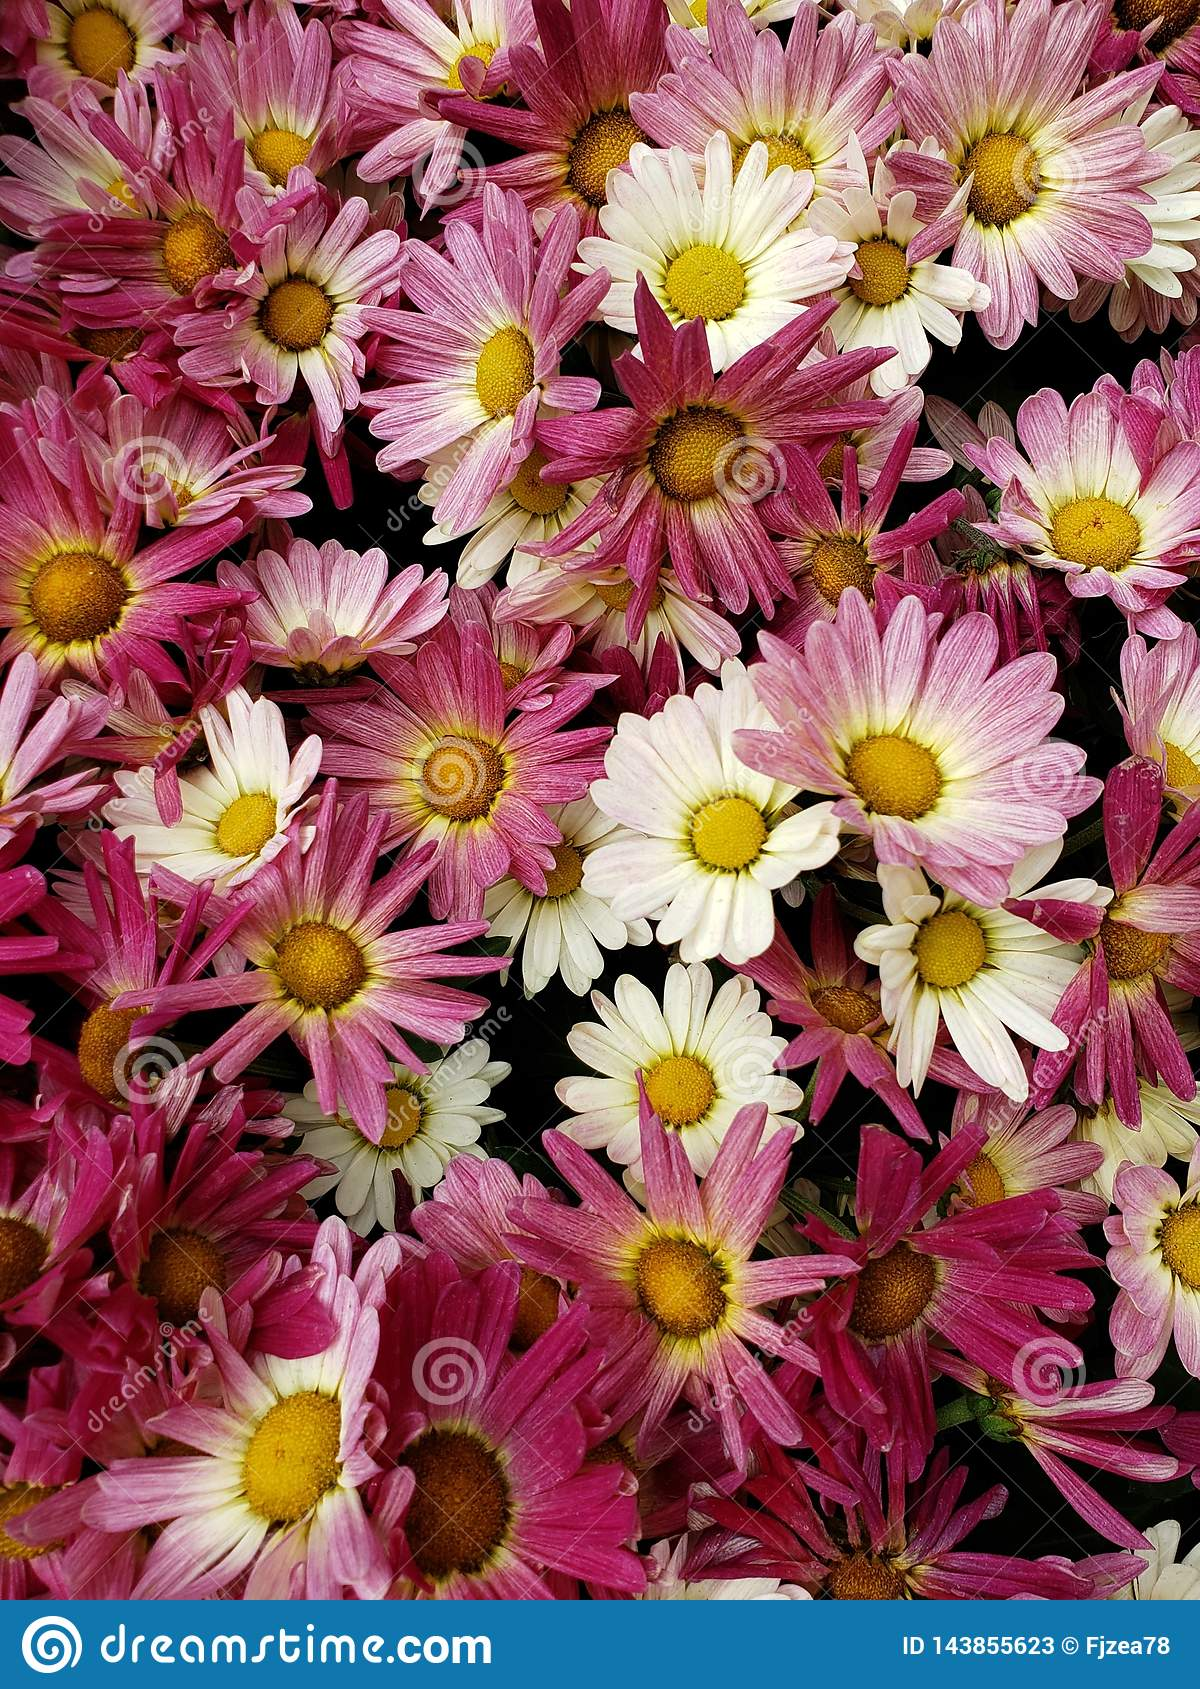 purple daisy flowers with white in a botanical garden in spring season, background and texture